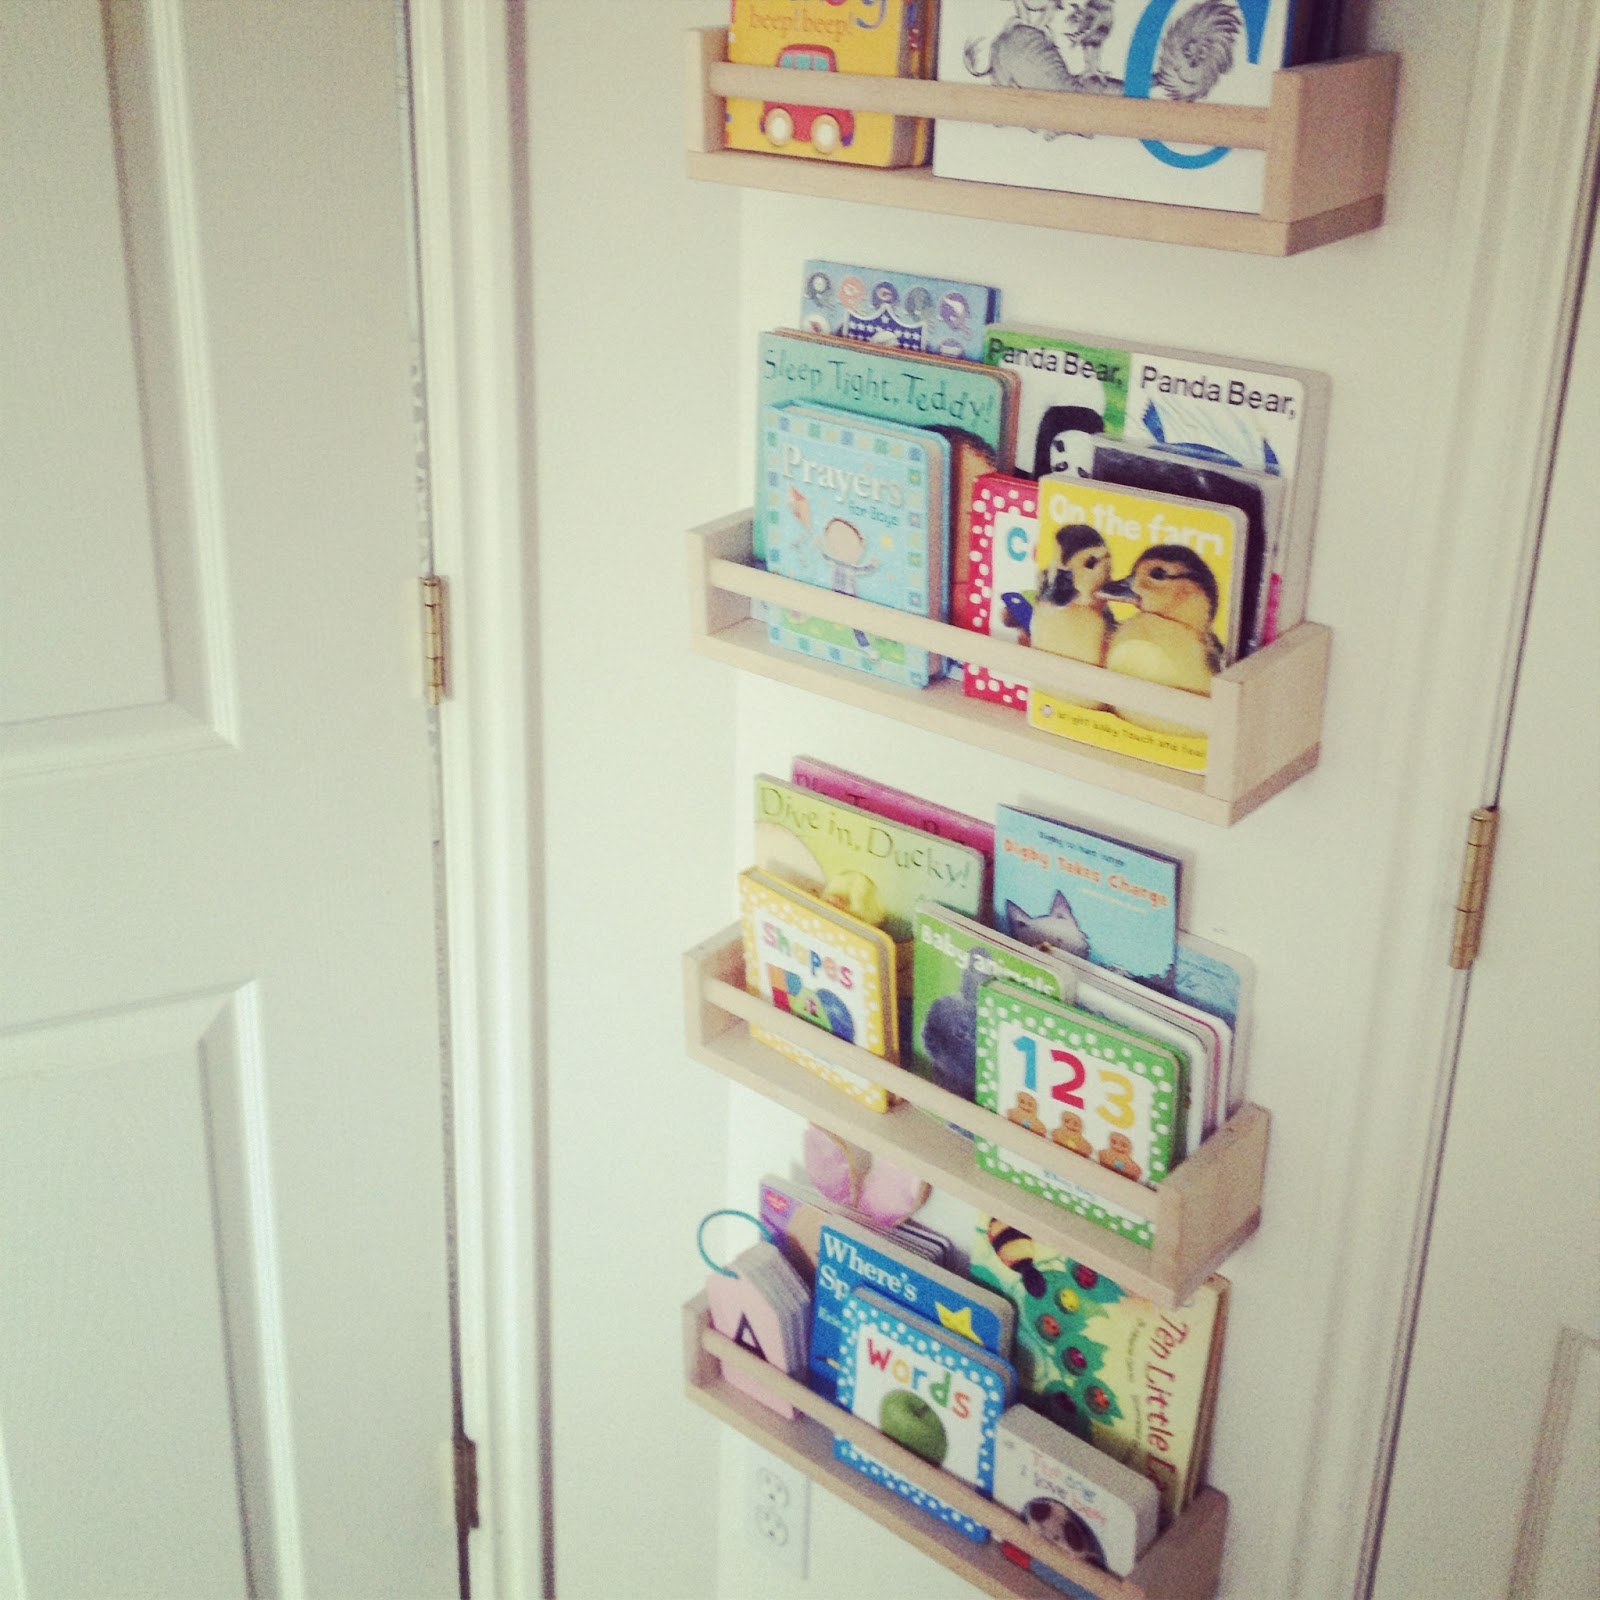 Toddler Book Storage Ideas: Big Momma O: Pinterest Project: Ikea Spice Rack Bookshelves